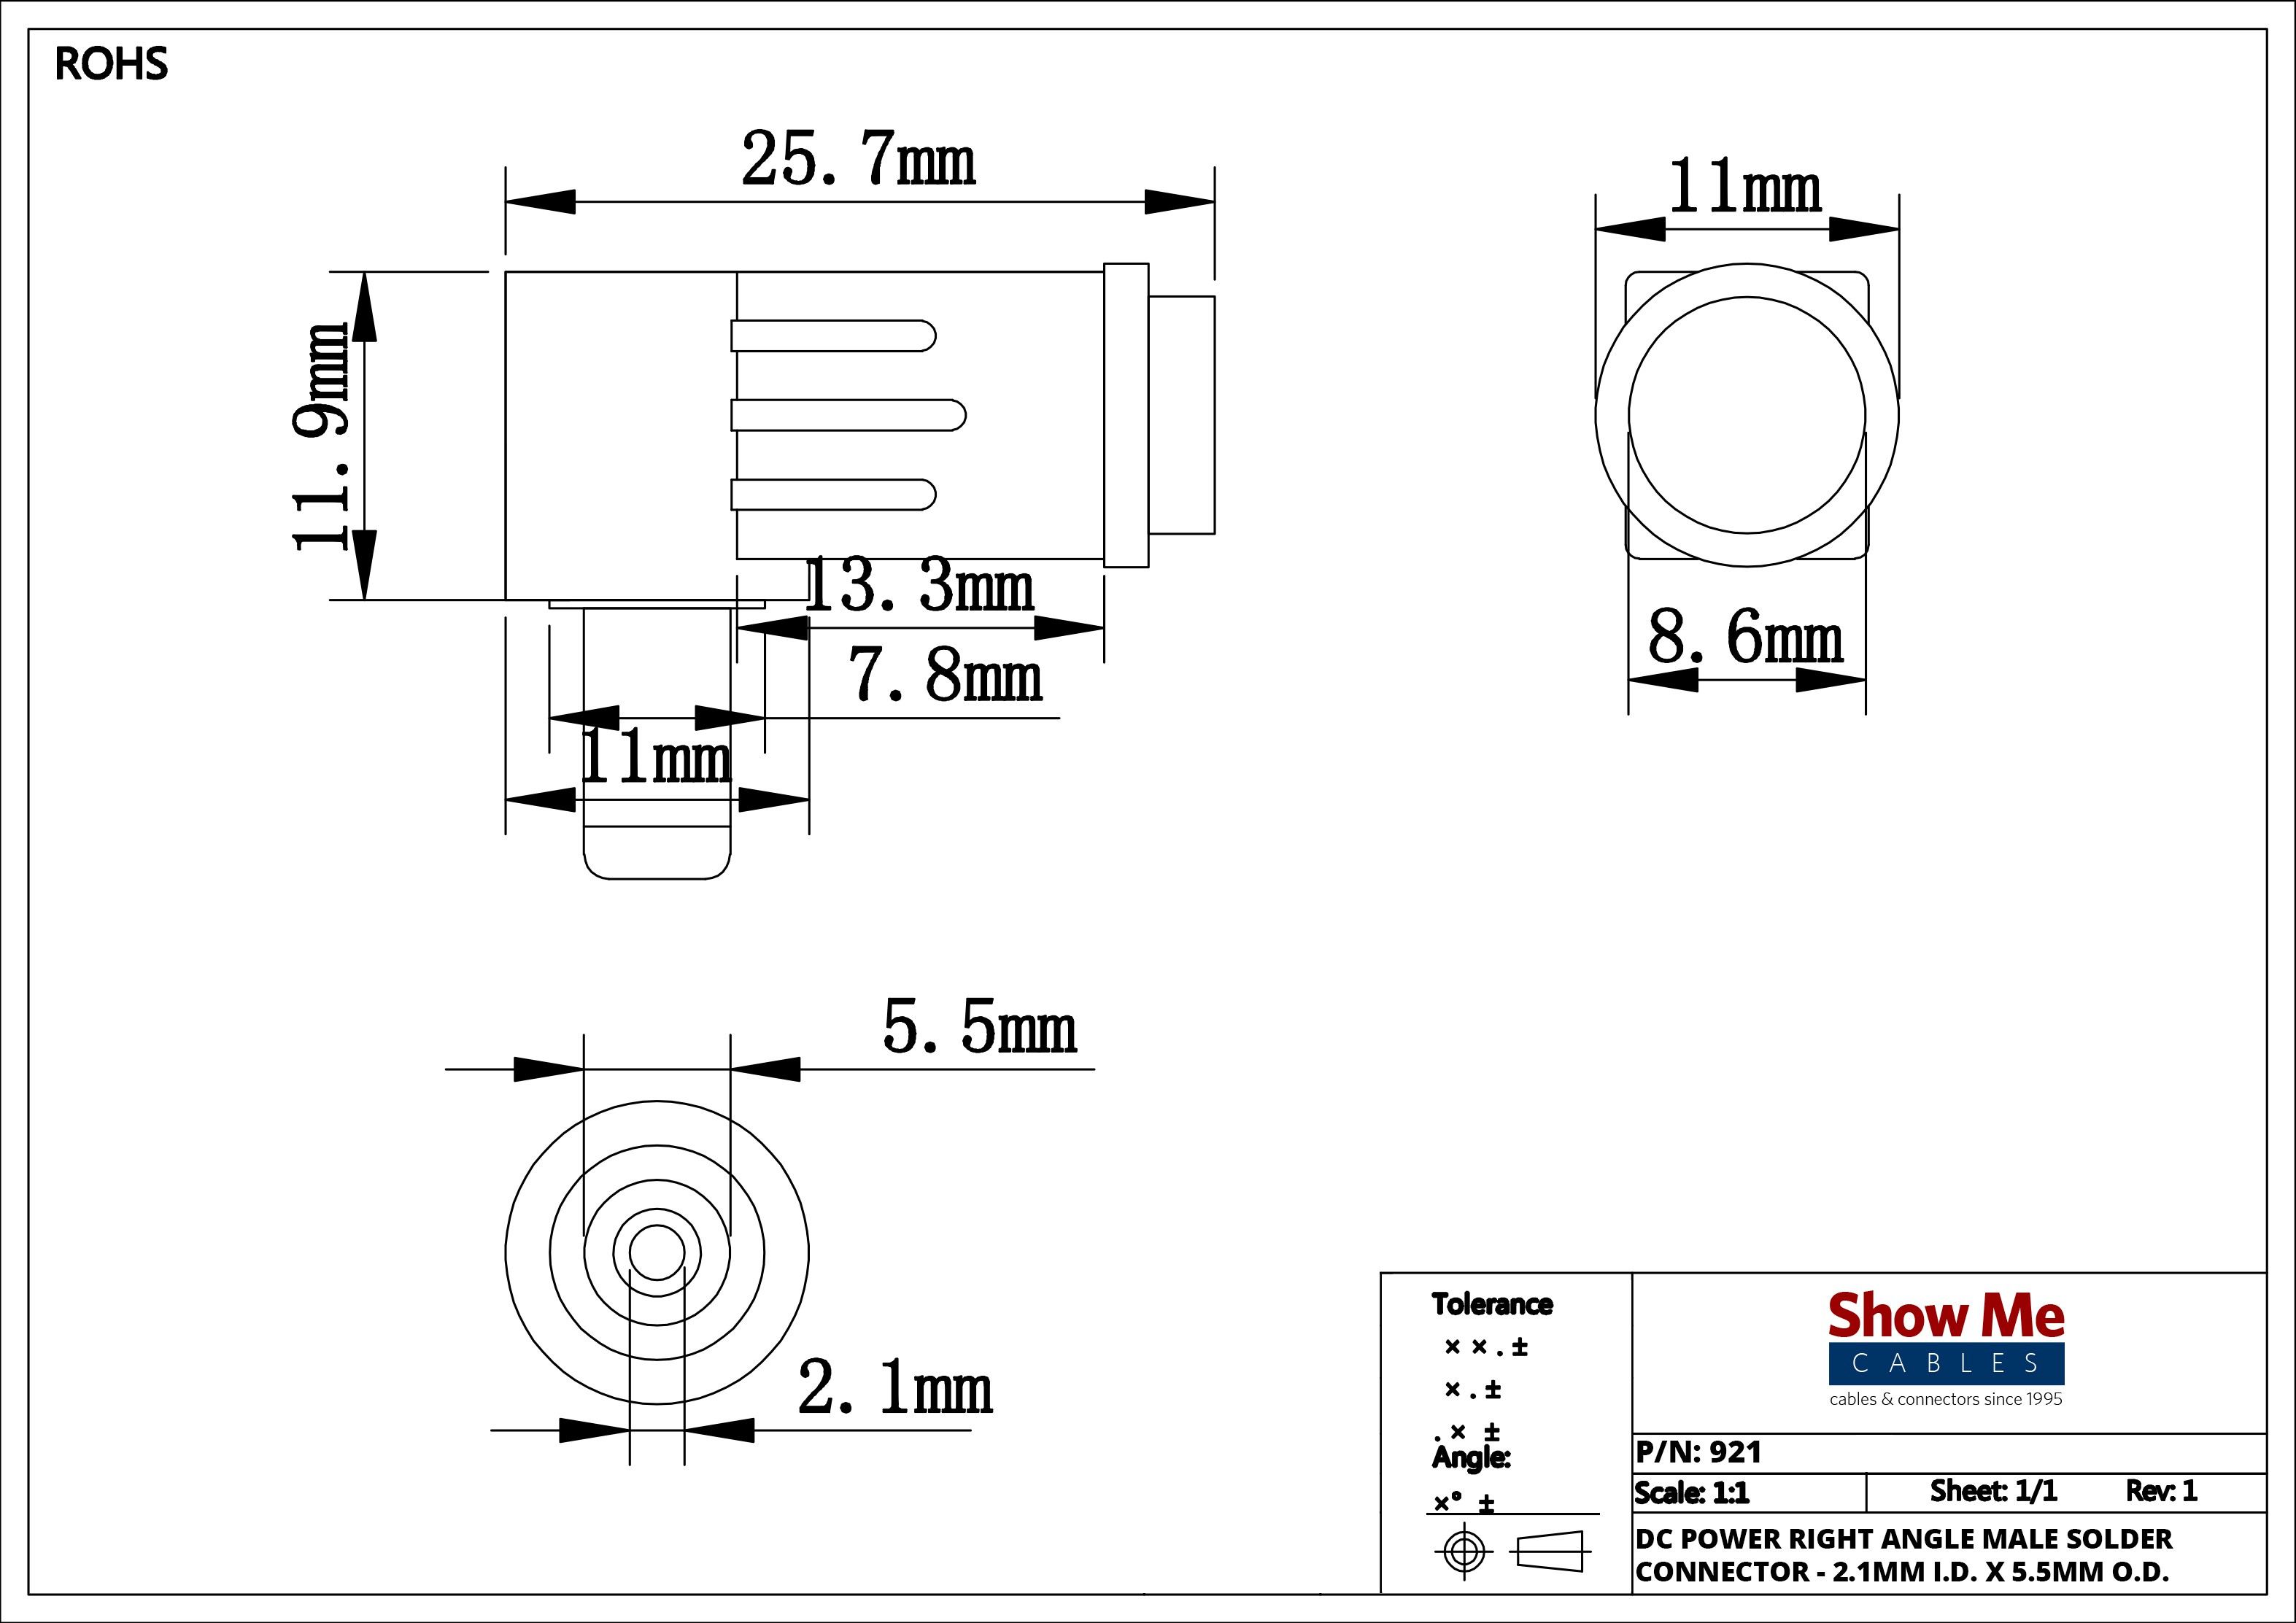 basic wiring diagram symbols Download-home speaker wiring diagram Collection 3 5 Mm Stereo Jack Wiring Diagram Elegant 2 5mm DOWNLOAD Wiring Diagram 16-d